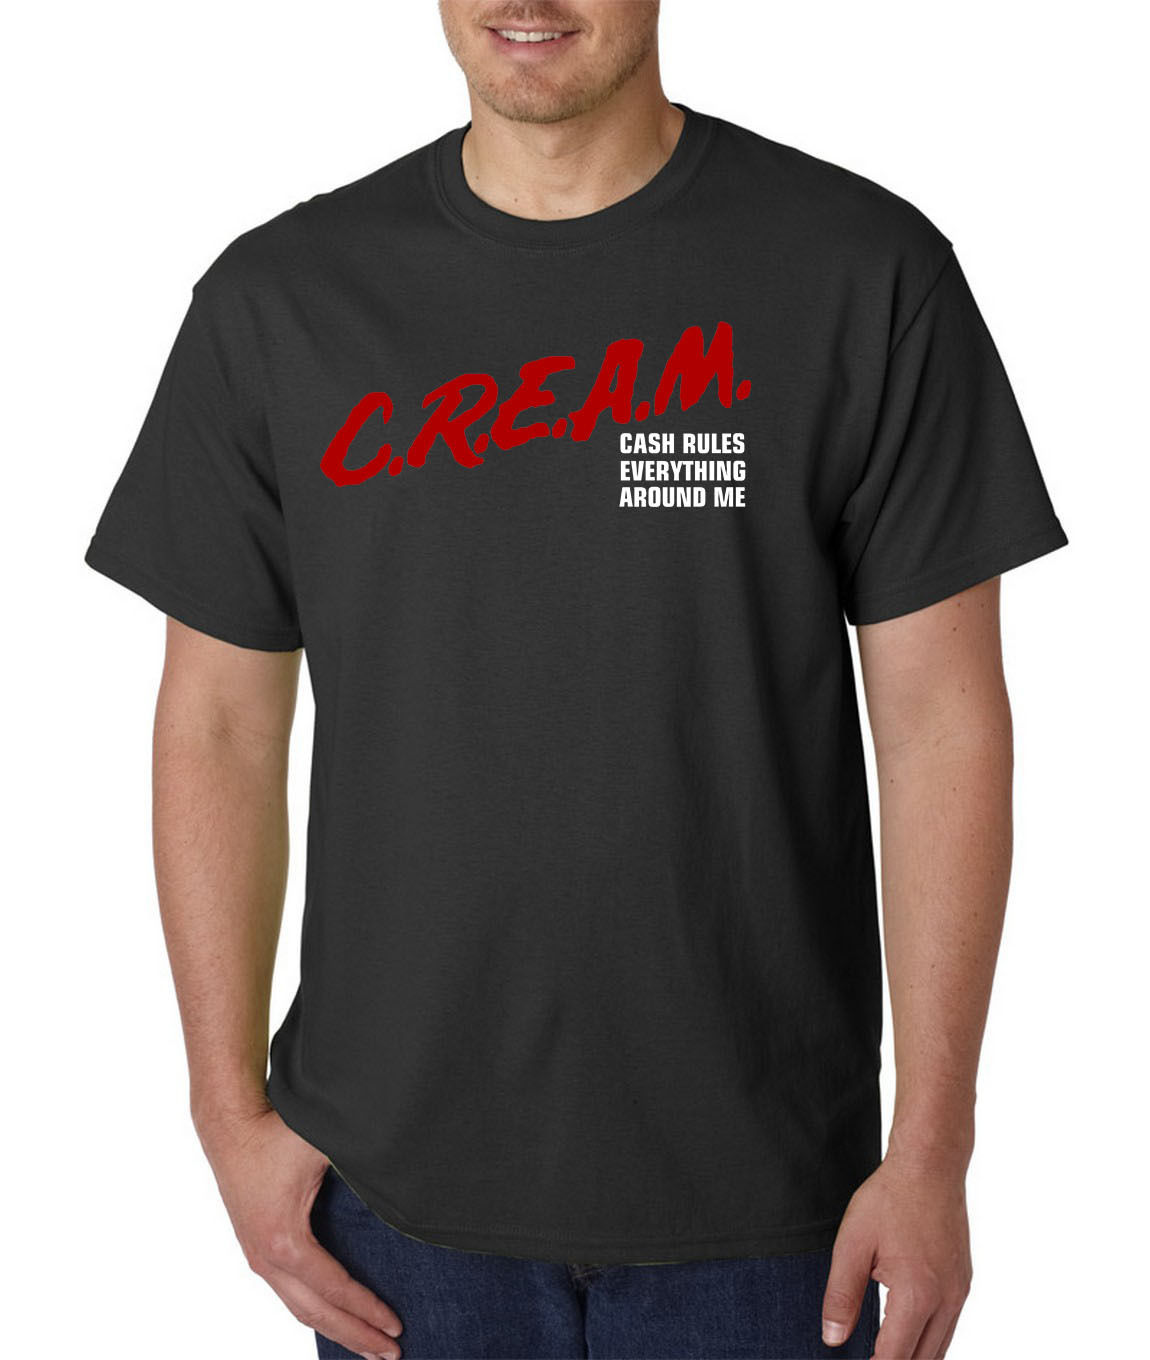 C.R.E.A.M. Dare Parody T-Shirt - Cash Rules Everything Around Me Hip Hop Rap Tee T Shirt Men Black Short Sleeve Cotton Hip Hop